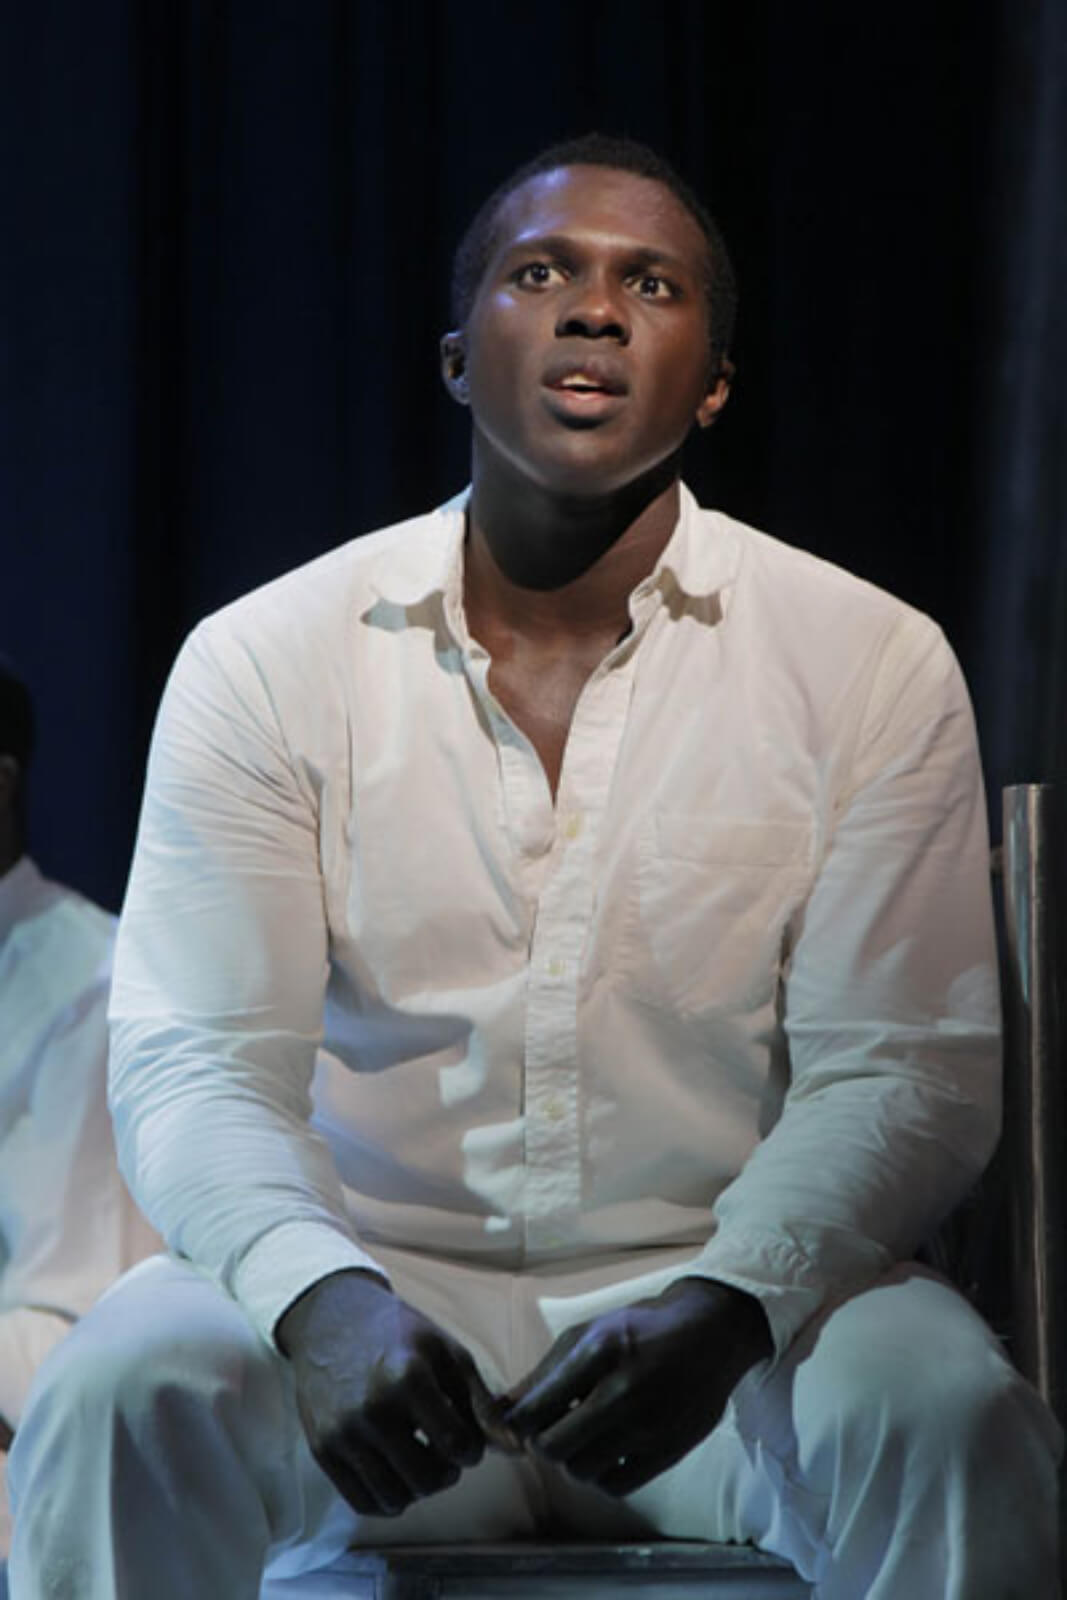 """Haywood Patterson (Joshua Henry) singing """"Go Back Home"""". He is singing from his jail cell dressed in white."""